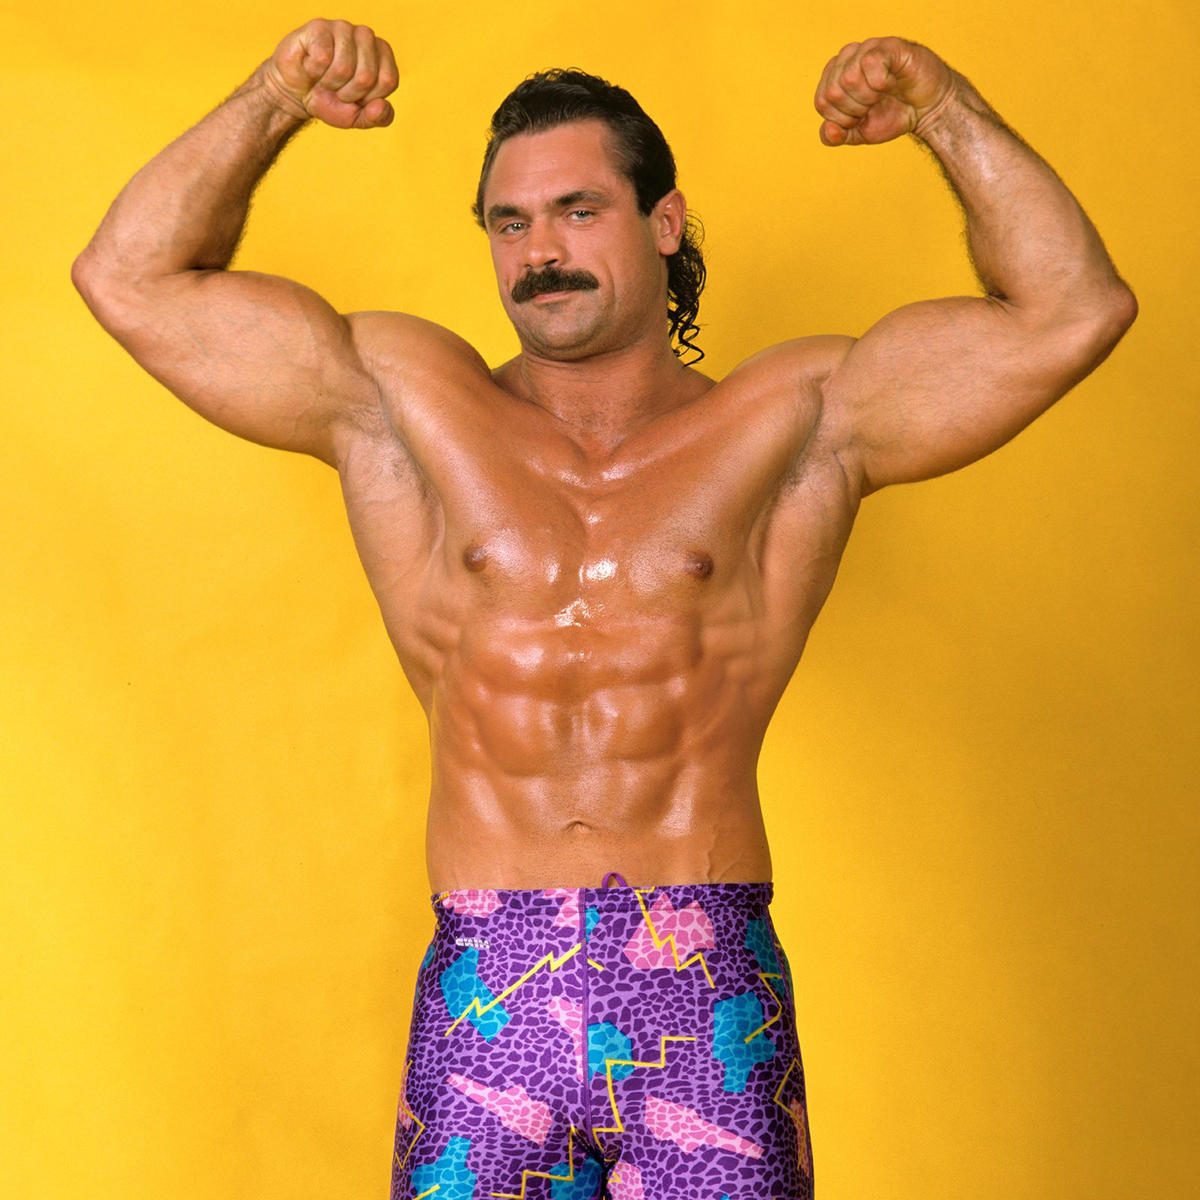 """Ravishing"" Rick Rude was a champion arm wrestler thanks to his legendary grip strength."